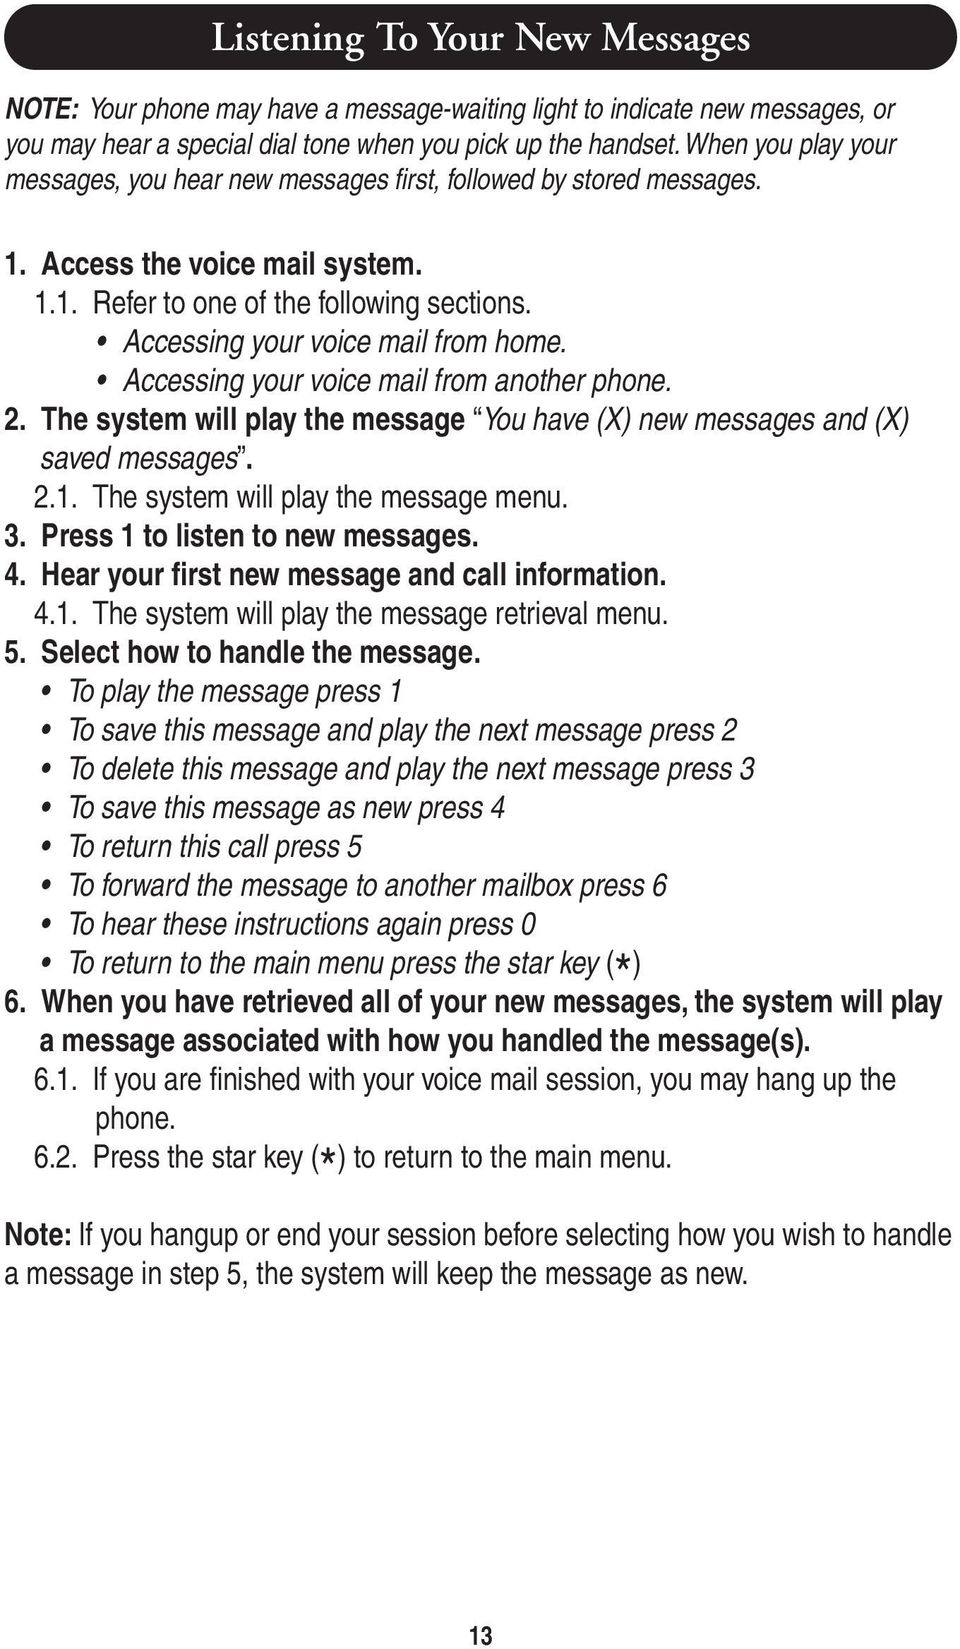 Accessing your voice mail from another phone. The system will play the message You have (X) new messages and (X) saved messages. The system will play the message menu.